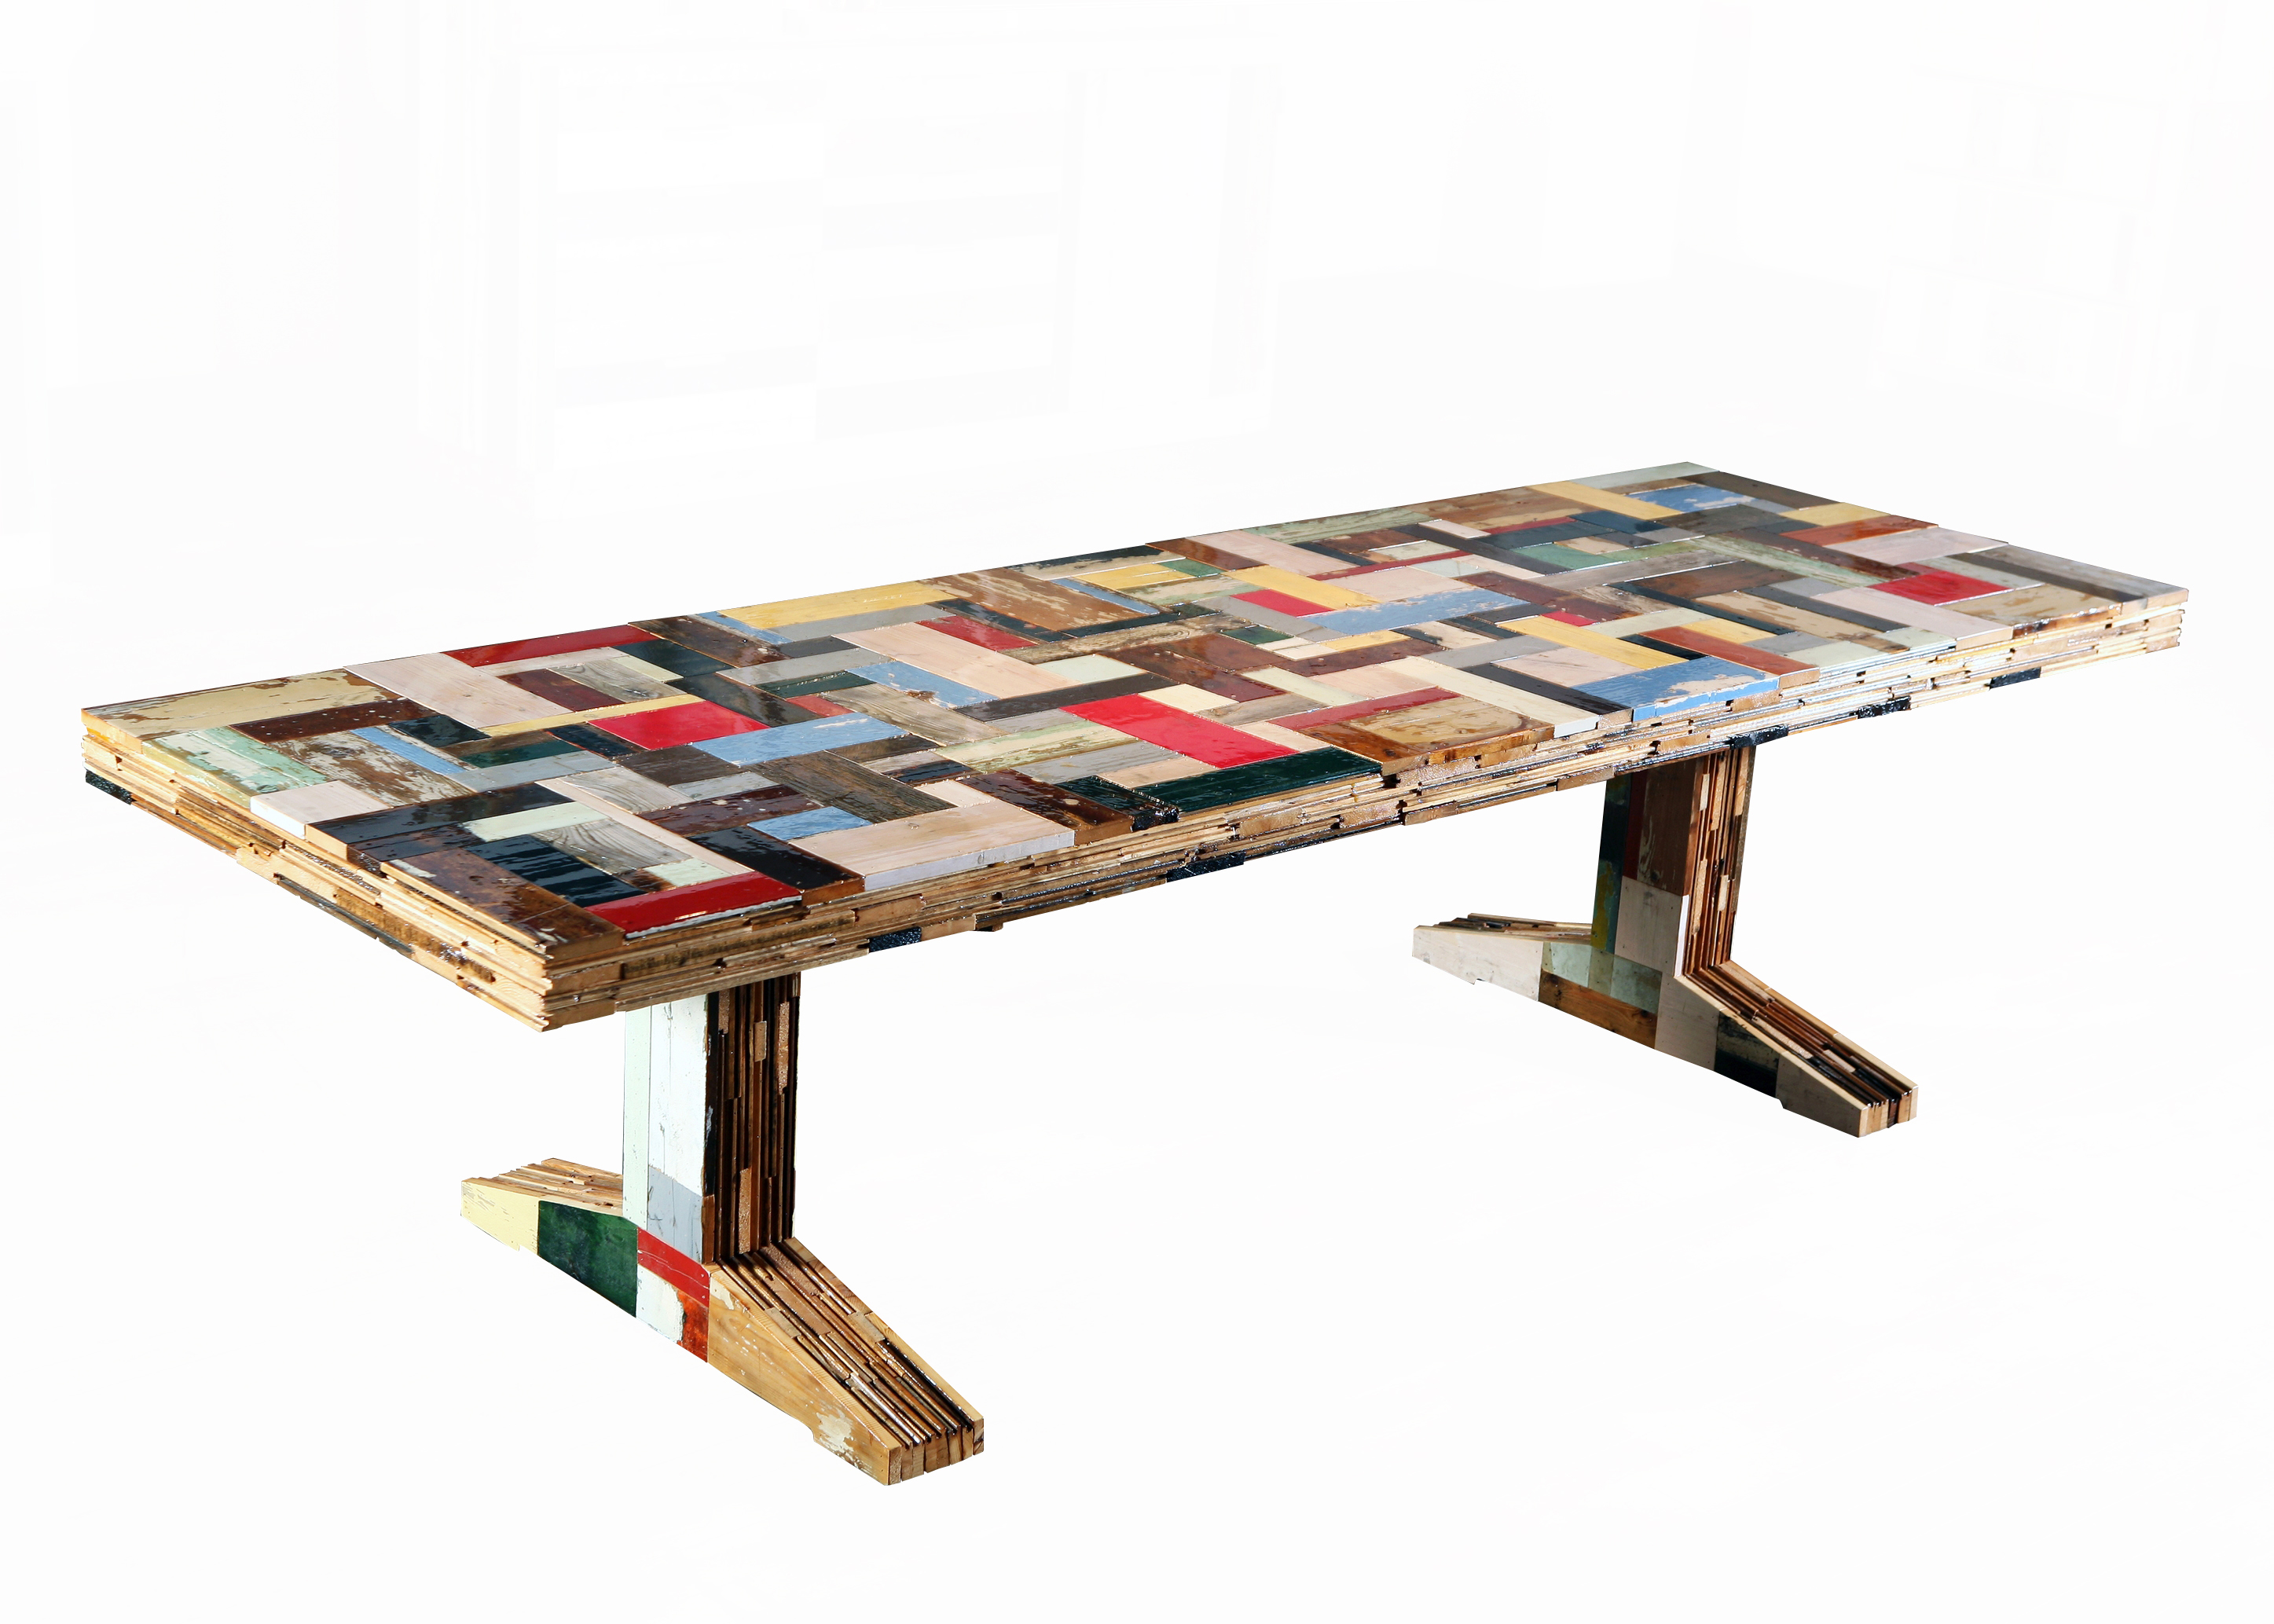 3835H Waste table in scrapwood - colourfulW